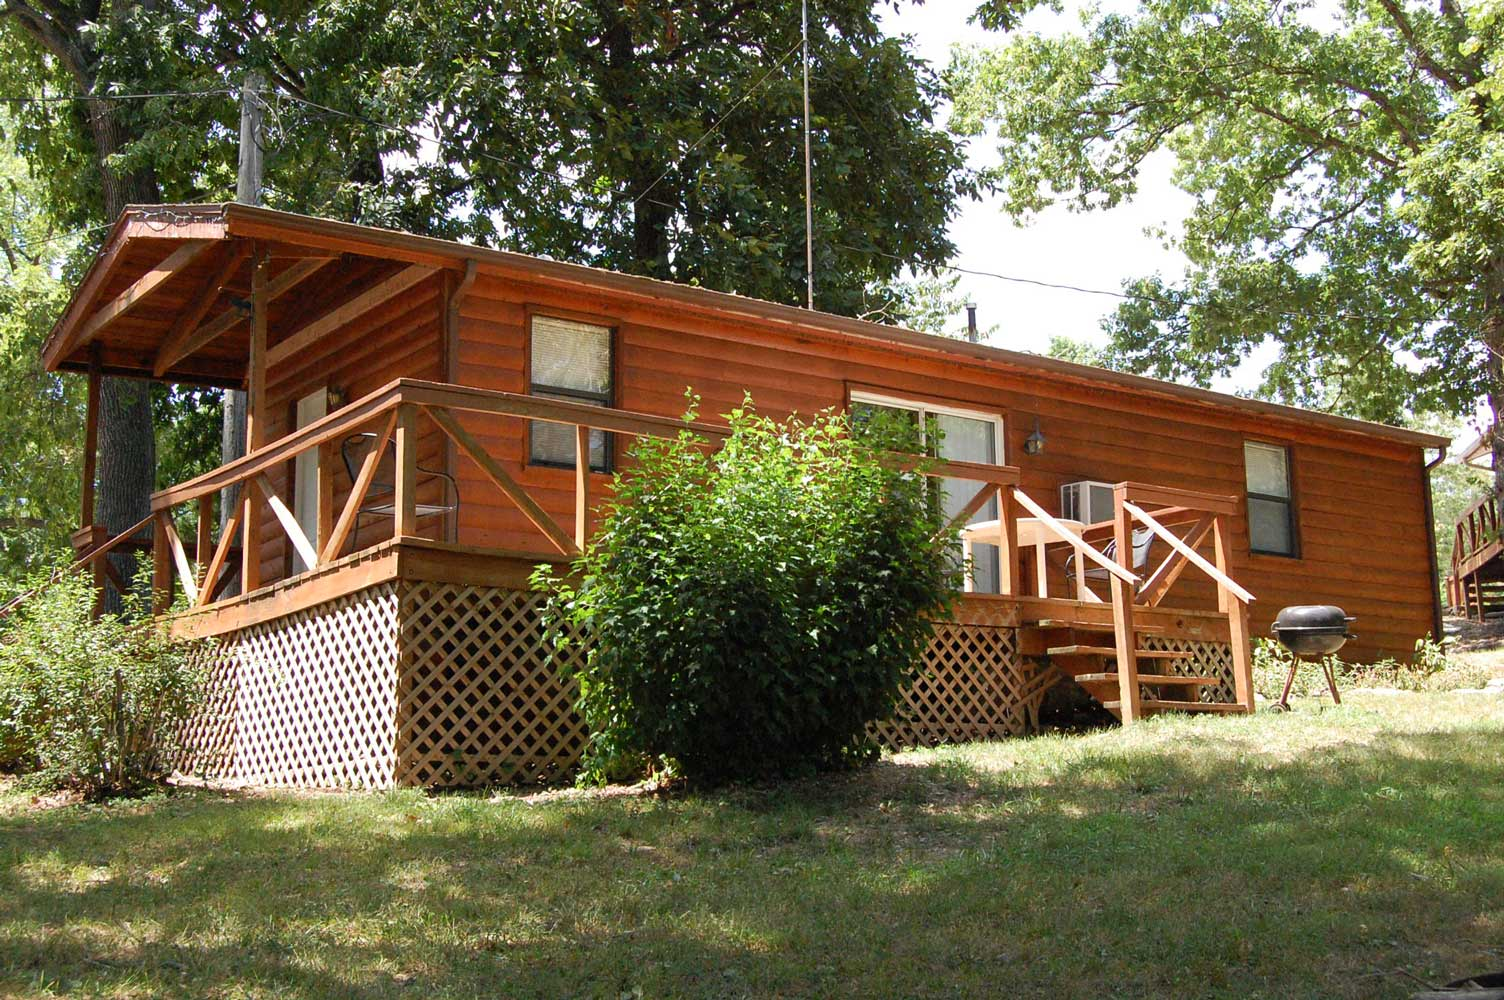 Table rock lake-Hickory Hollow Resort Cabin 2 - Exterior